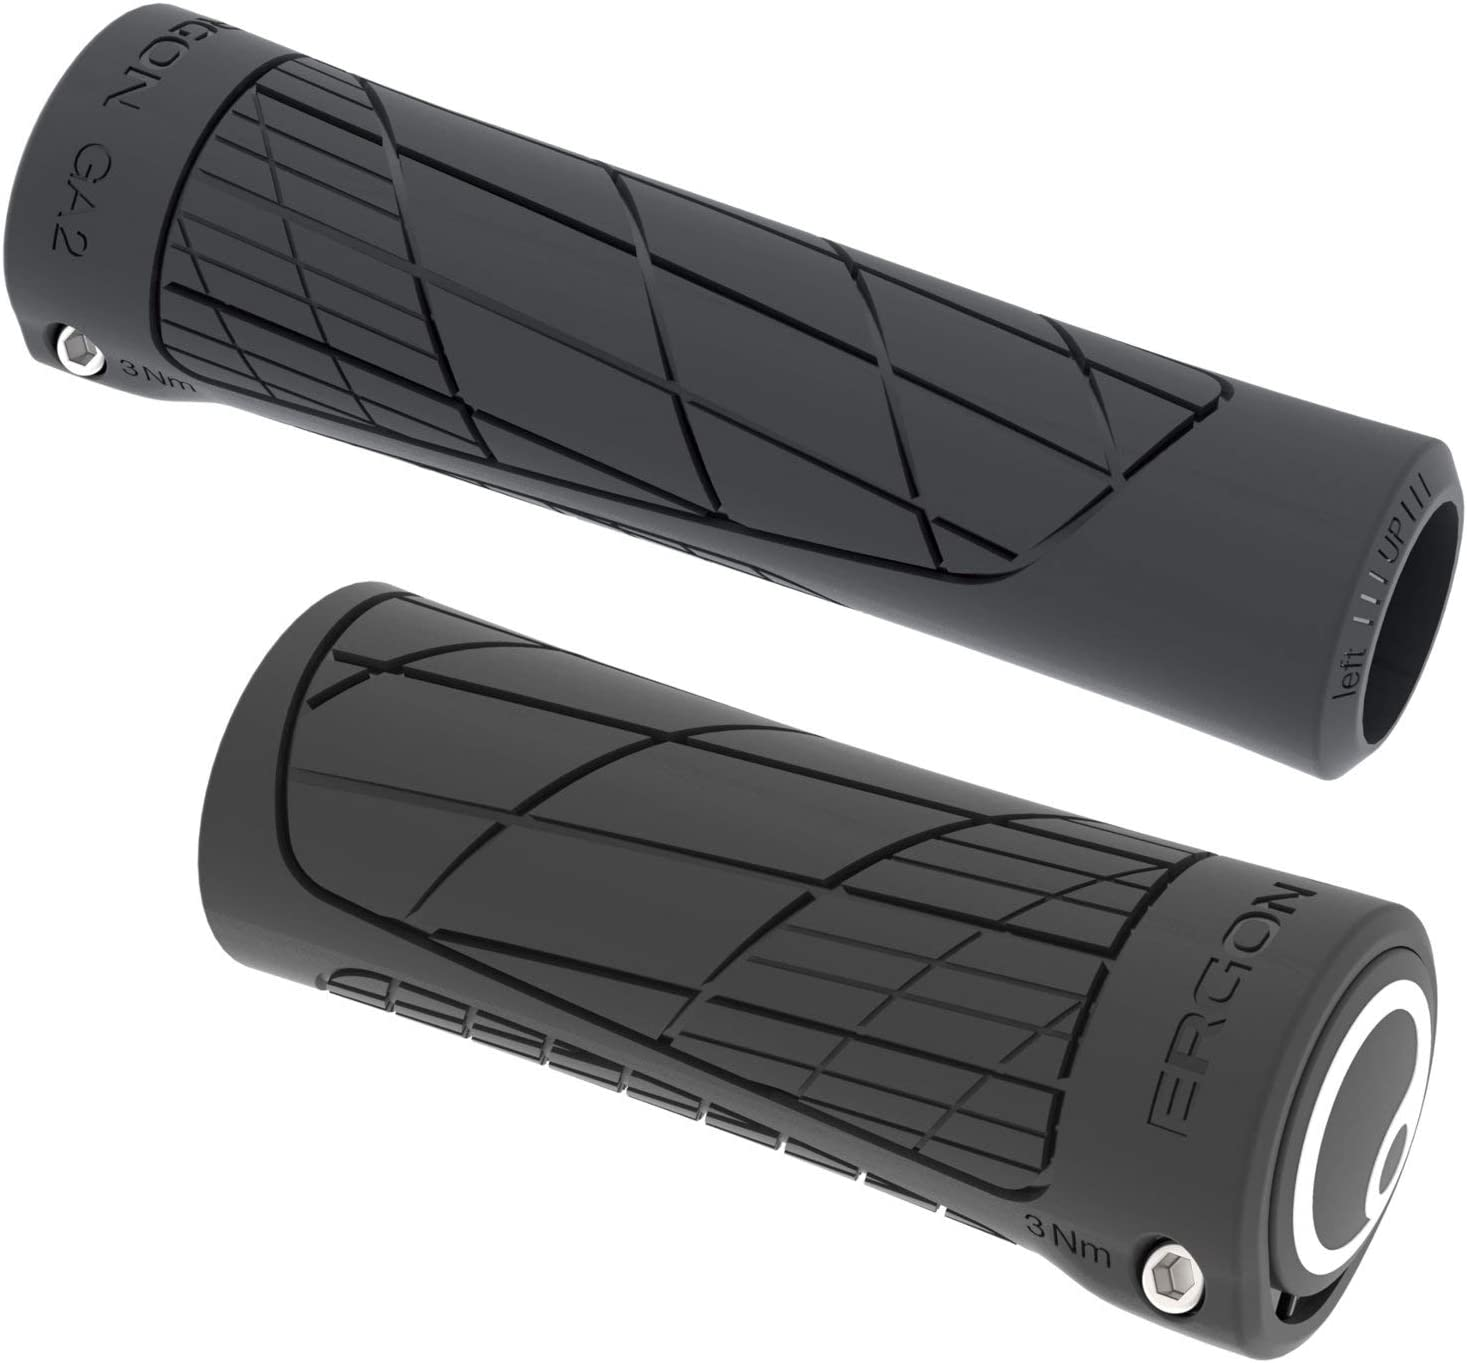 Ergon GD1 Evo Slim Gel Ergo Grips fits Most Handlebars Bike Choose Your Color